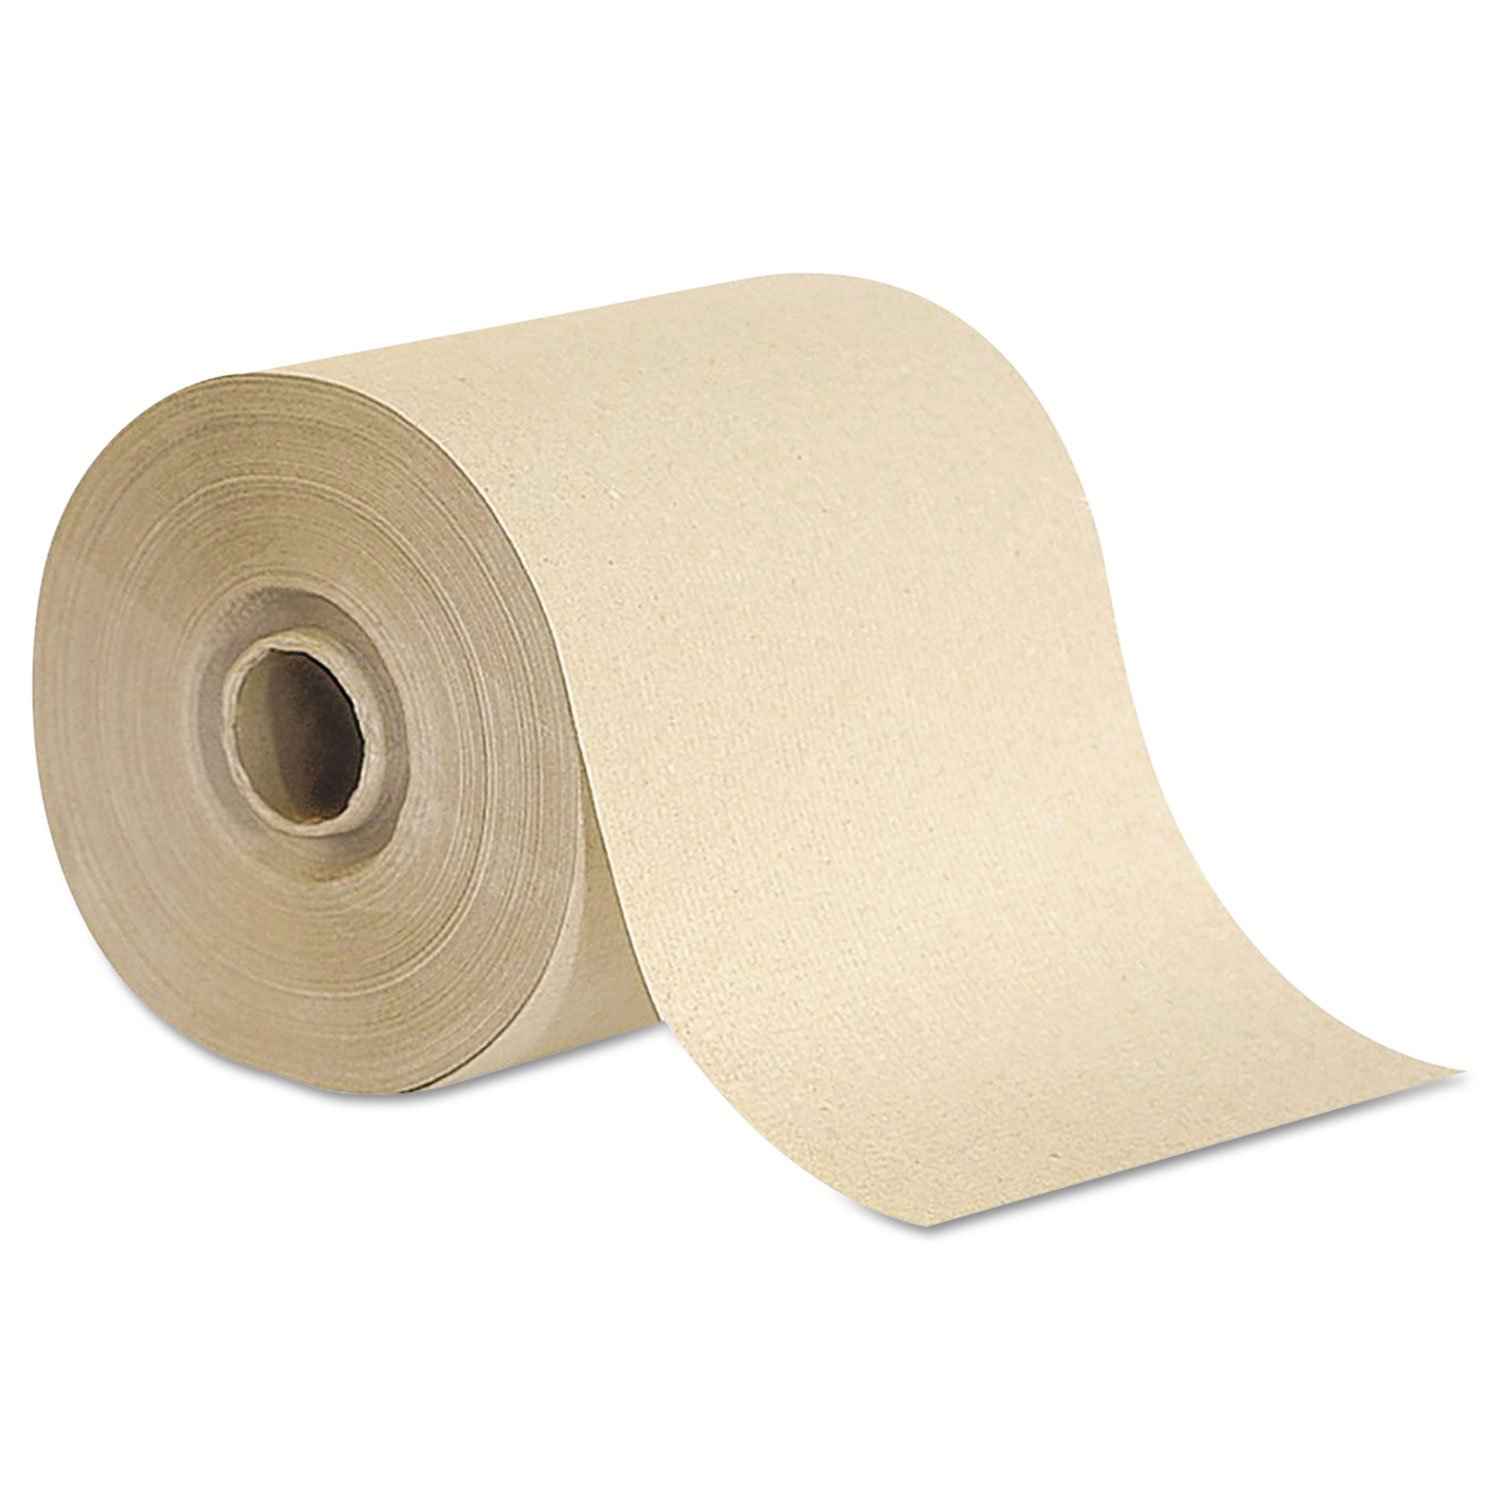 Georgia Pacific Professional 19724 Towlmastr Series 2000 Roll Towel (X-Series), Brown, 7 5/8 x 450 ft (Case of 12)